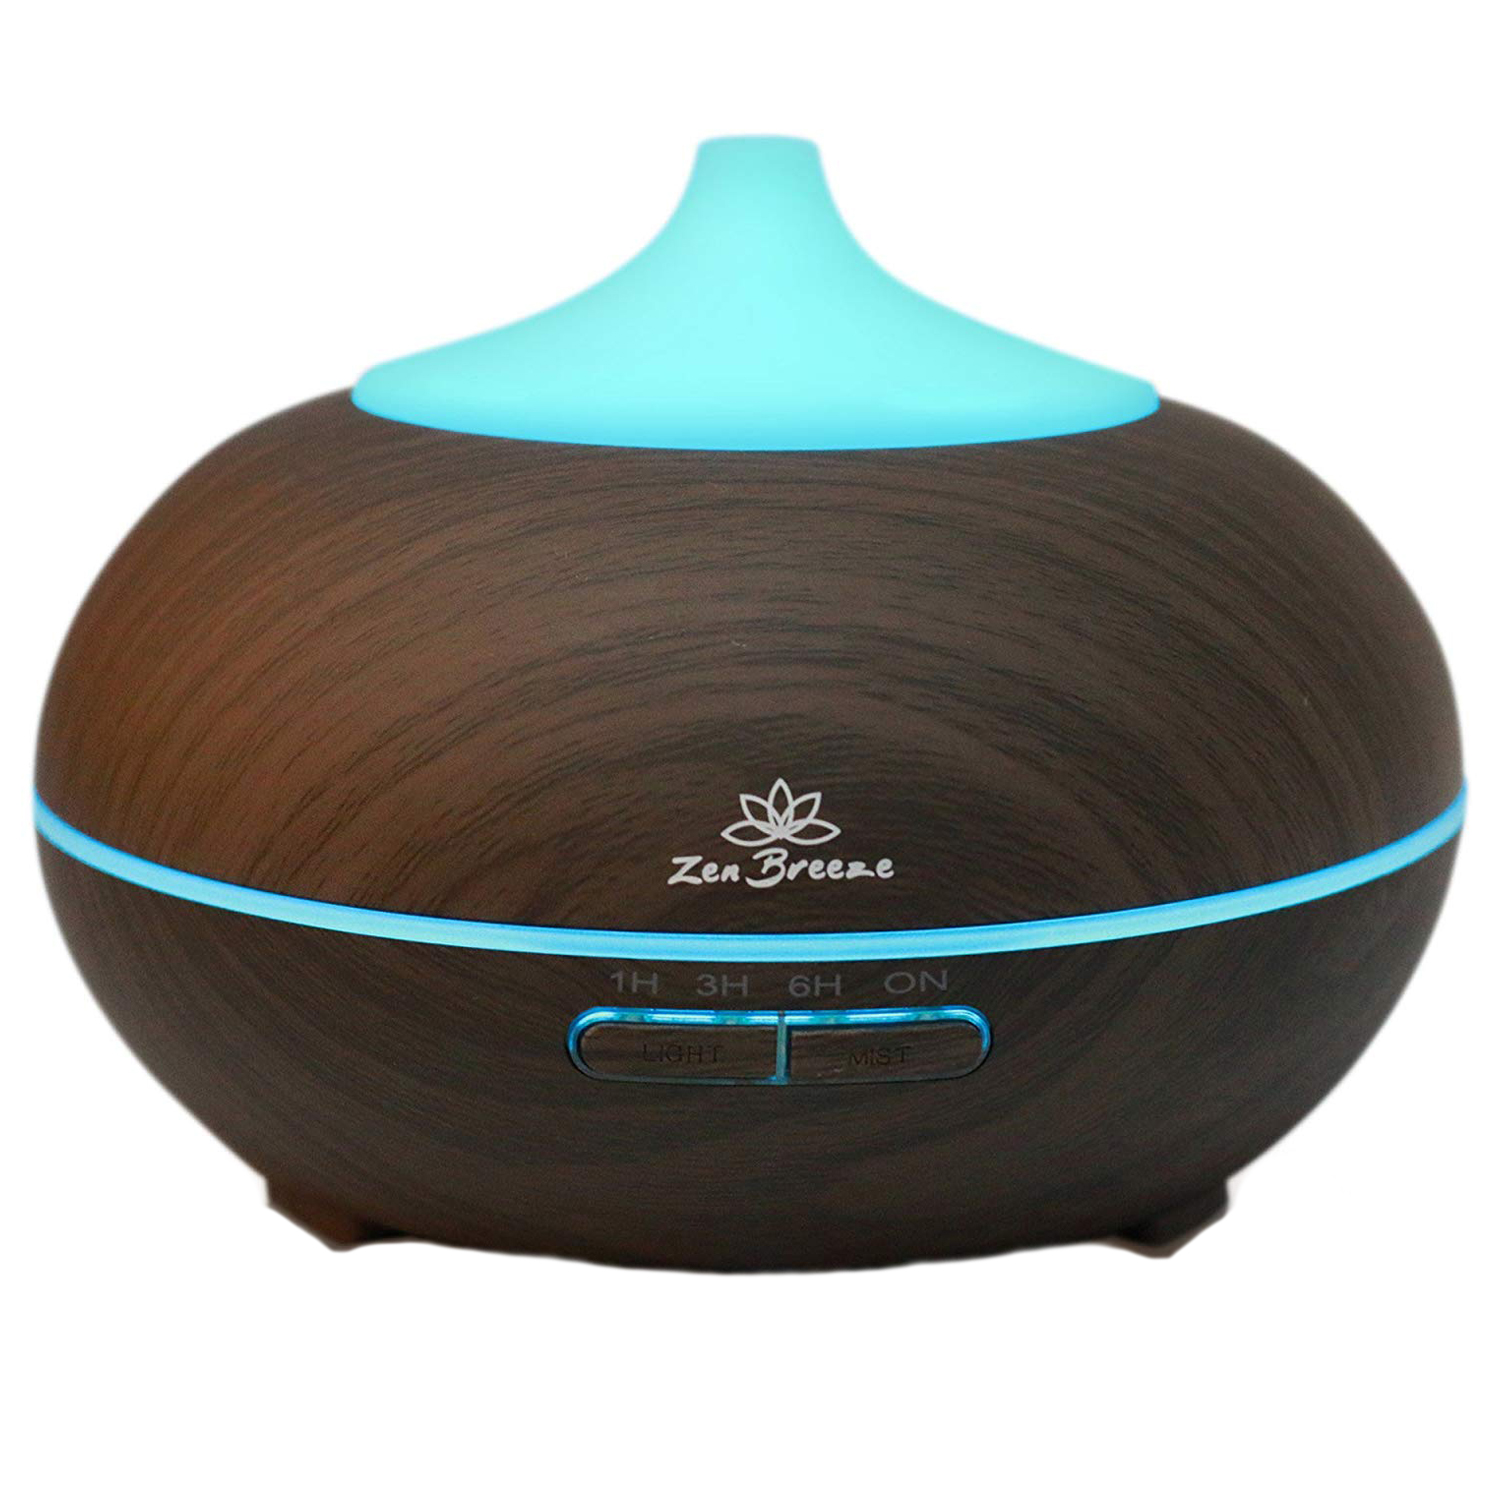 Best Christmas Gifts for Brothers 2019: Zen Breeze Essential Oil Diffuser